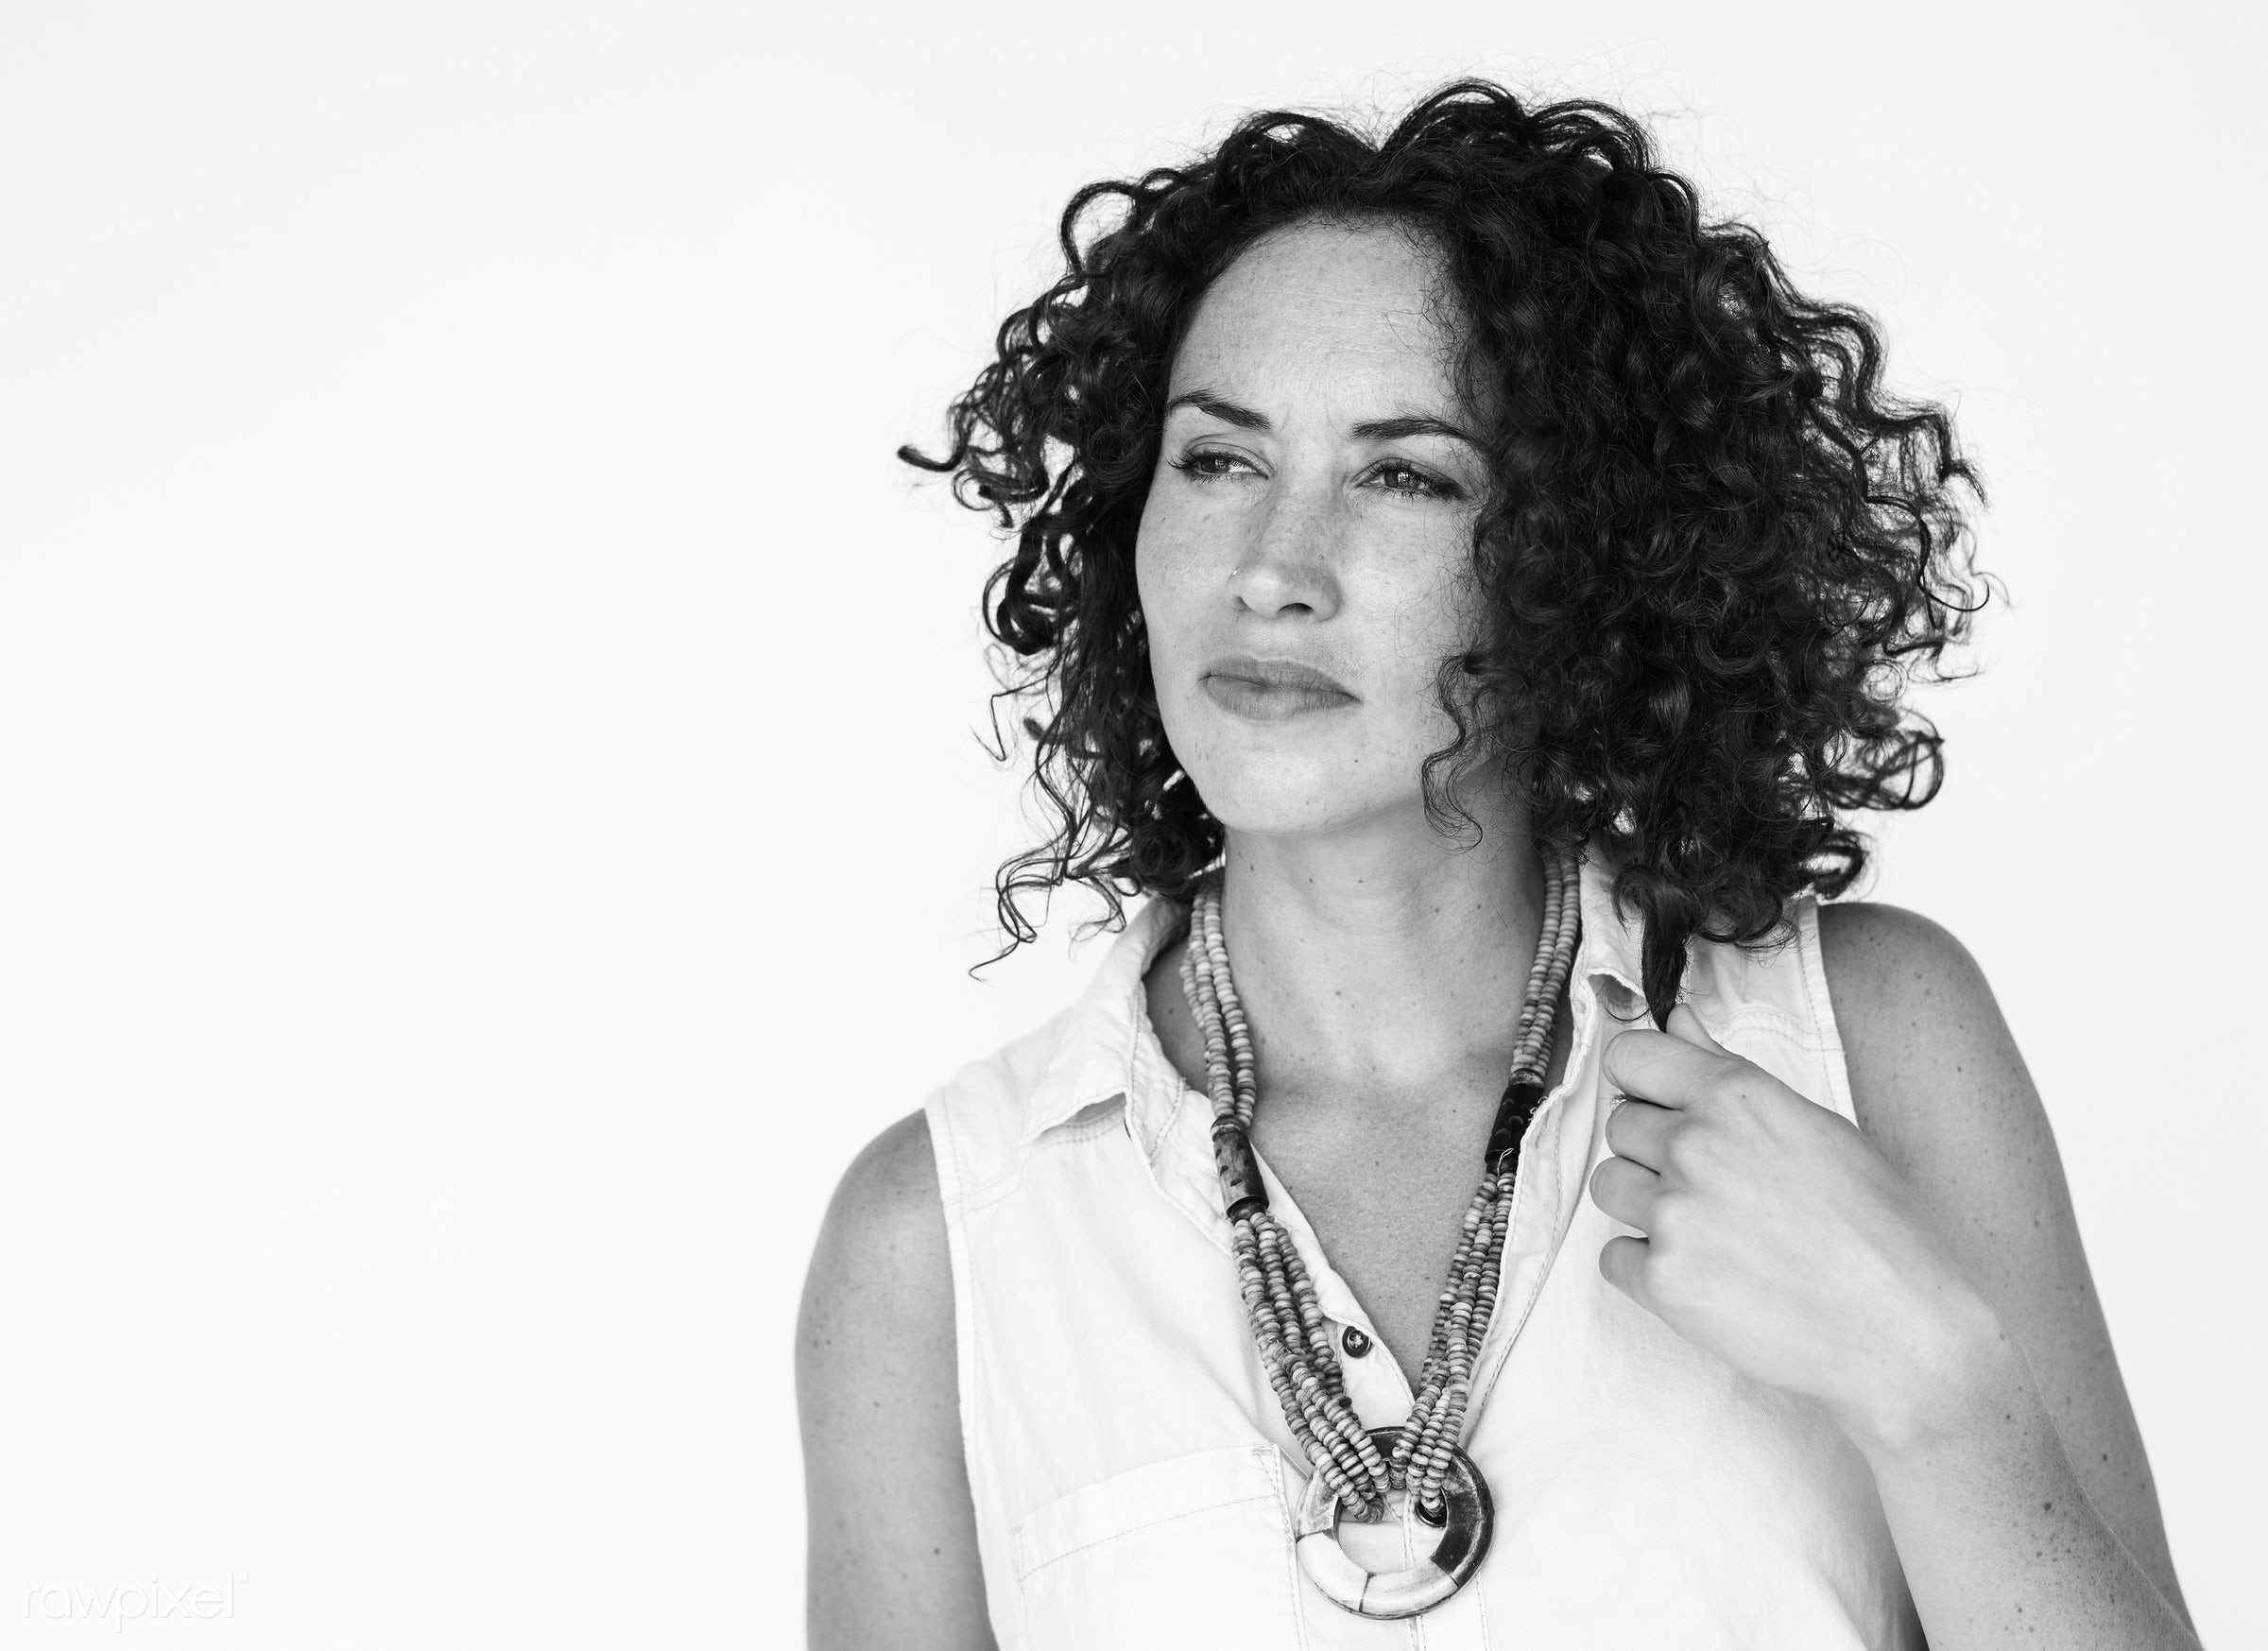 studio, calm, dreaming, expression, person, isolated on white, people, caucasian, curly, concerned, woman, casual, positive...